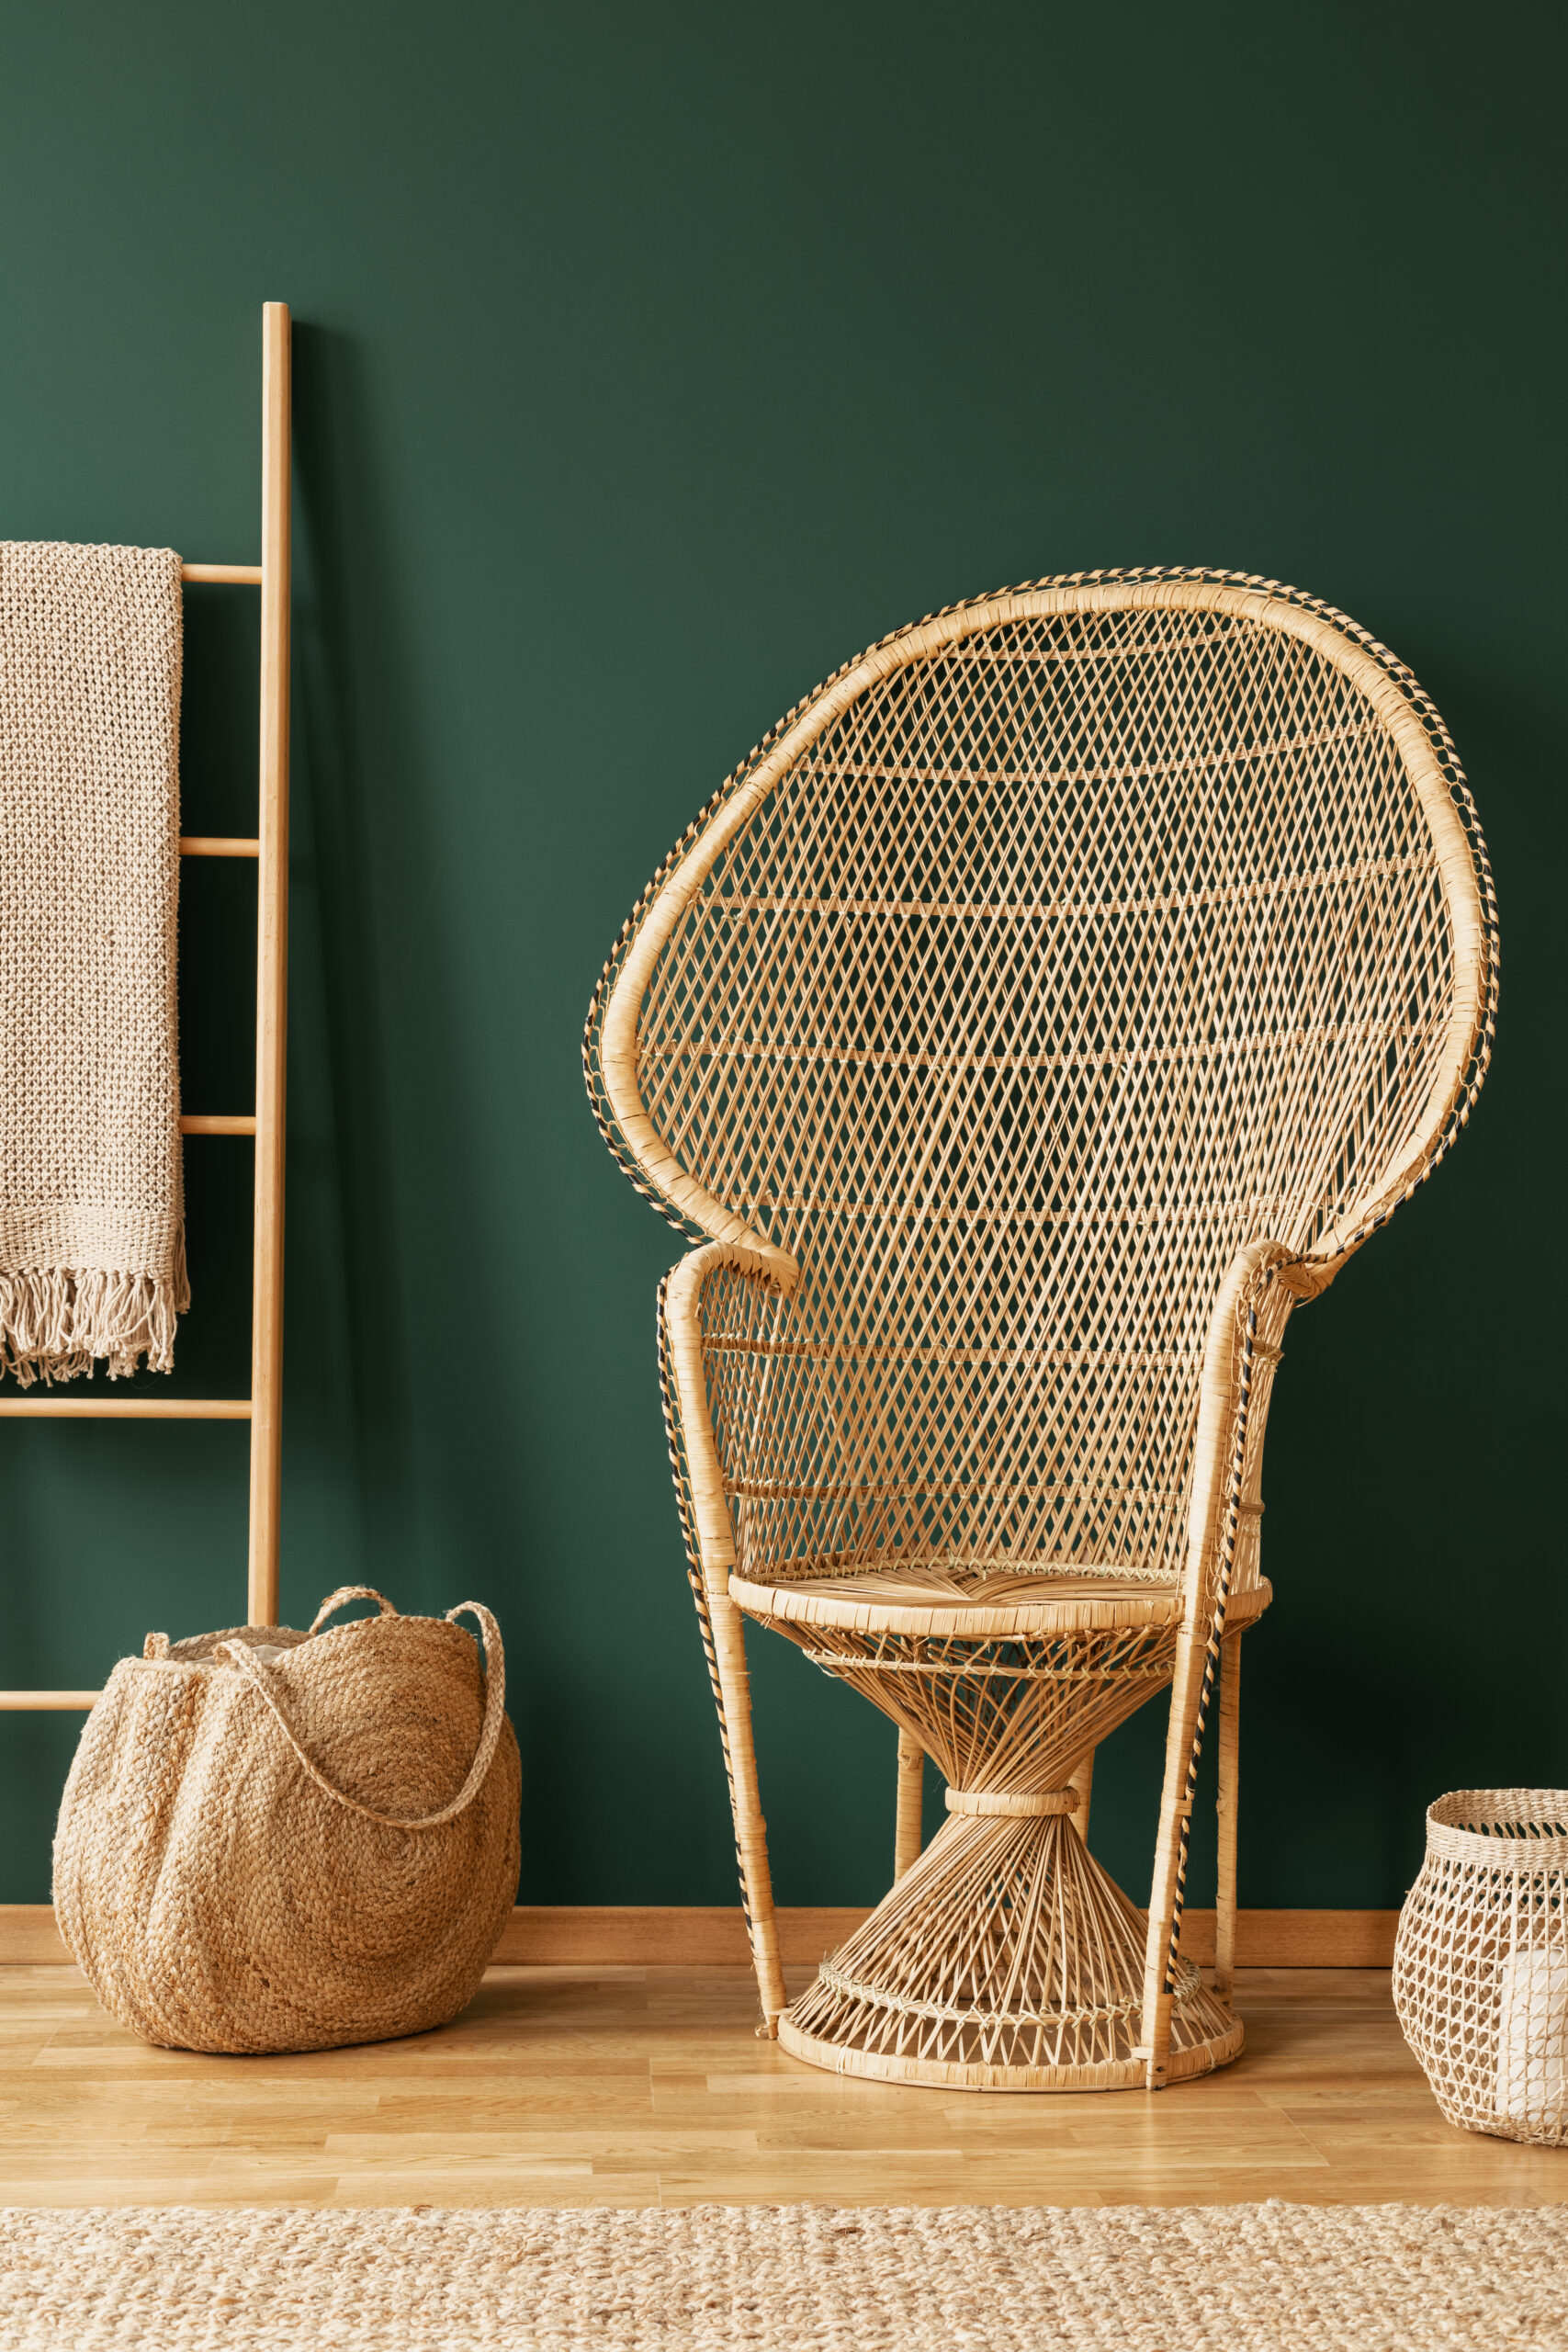 affordable rattan items